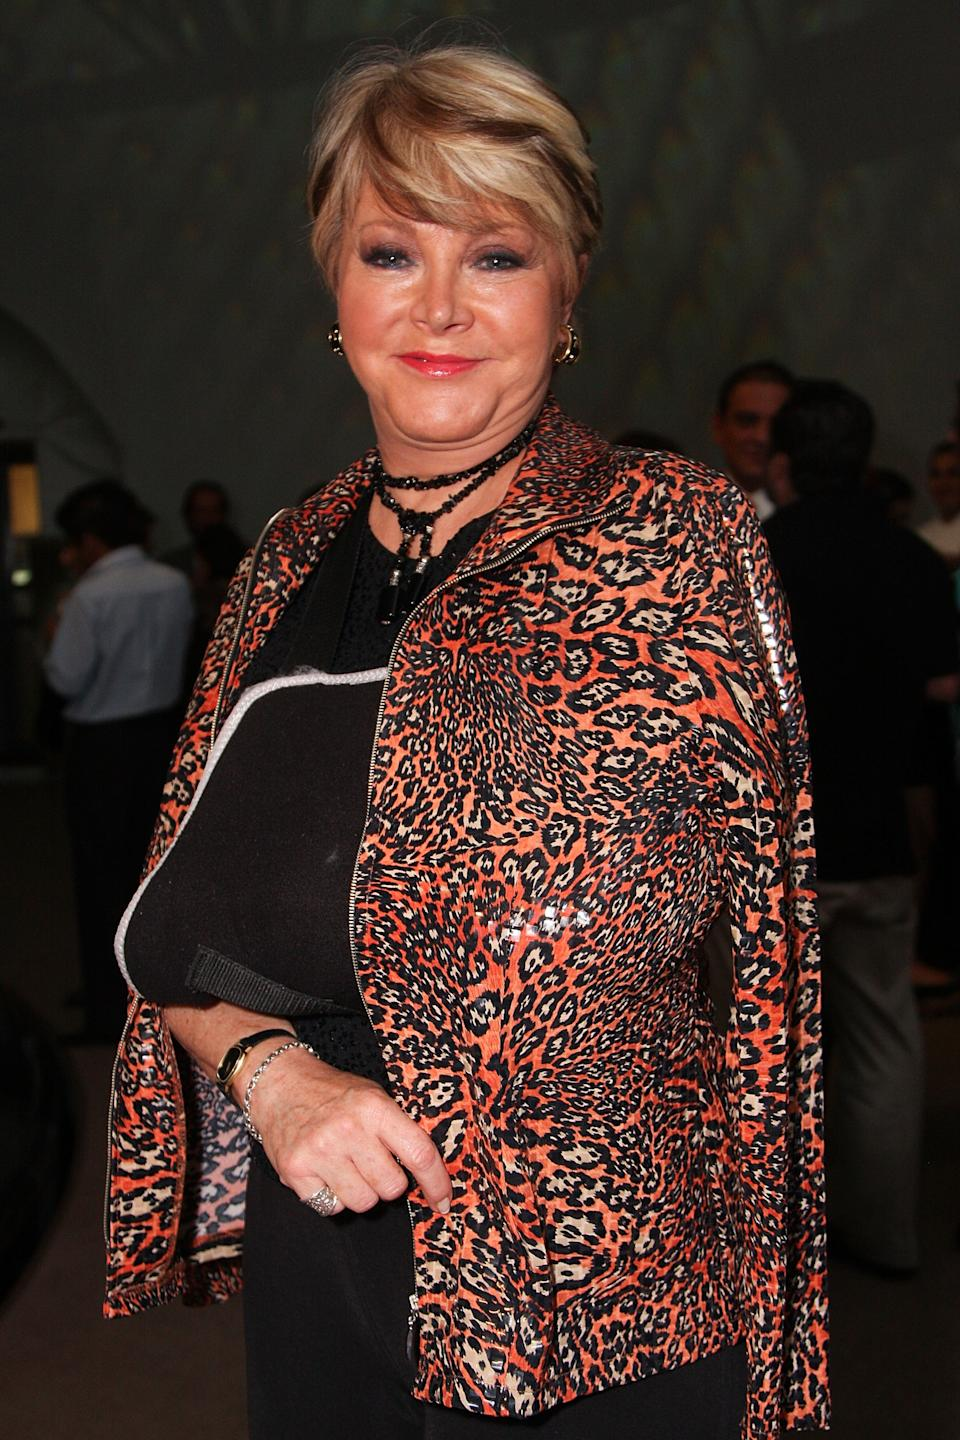 TV personality Lolita Ayala attends the Mercedes Benz Fashion Mexico Autumn/Winter 2008 at Antara Polanco on April 11, 2008 in Mexico City, Mexico. (Photo by Victor Chavez/WireImage)